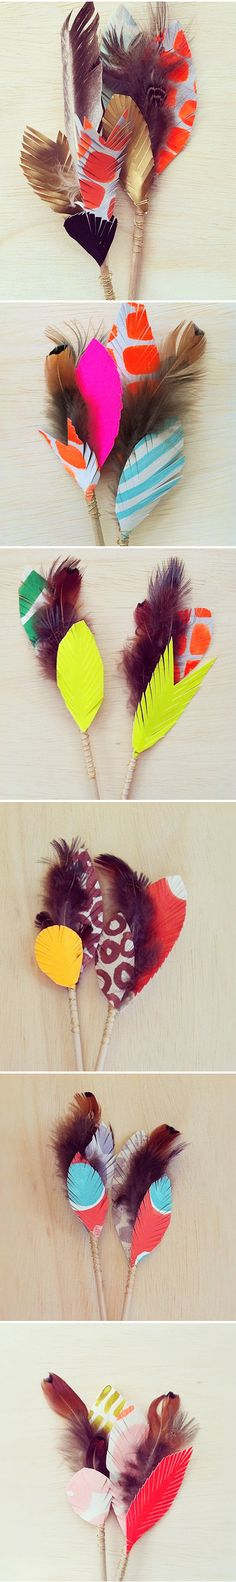 DIY arrows or boutonniere. Very cool